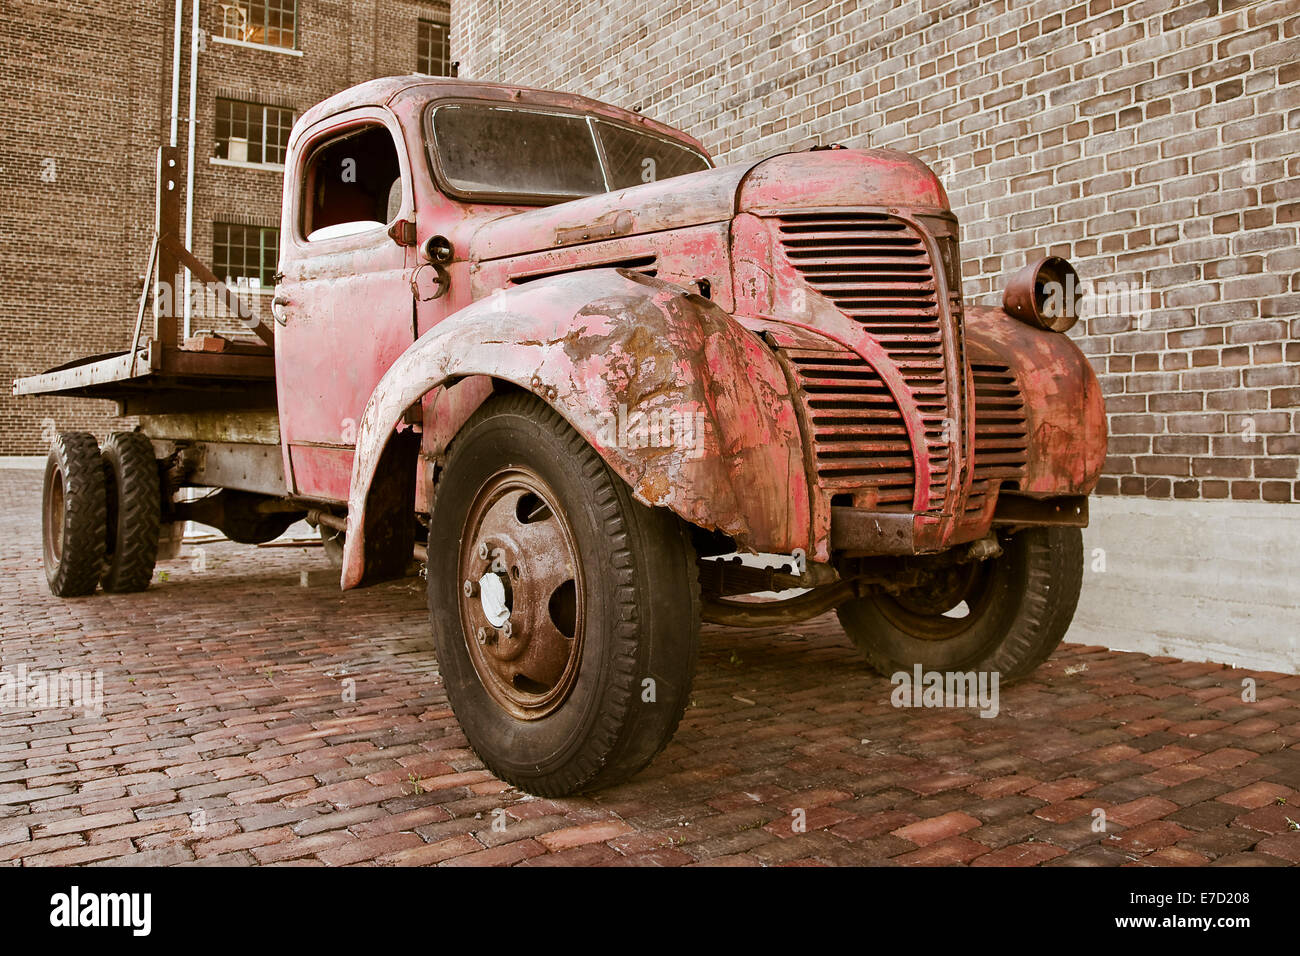 Old rusty truck Stock Photo, Royalty Free Image: 73431016 - Alamy